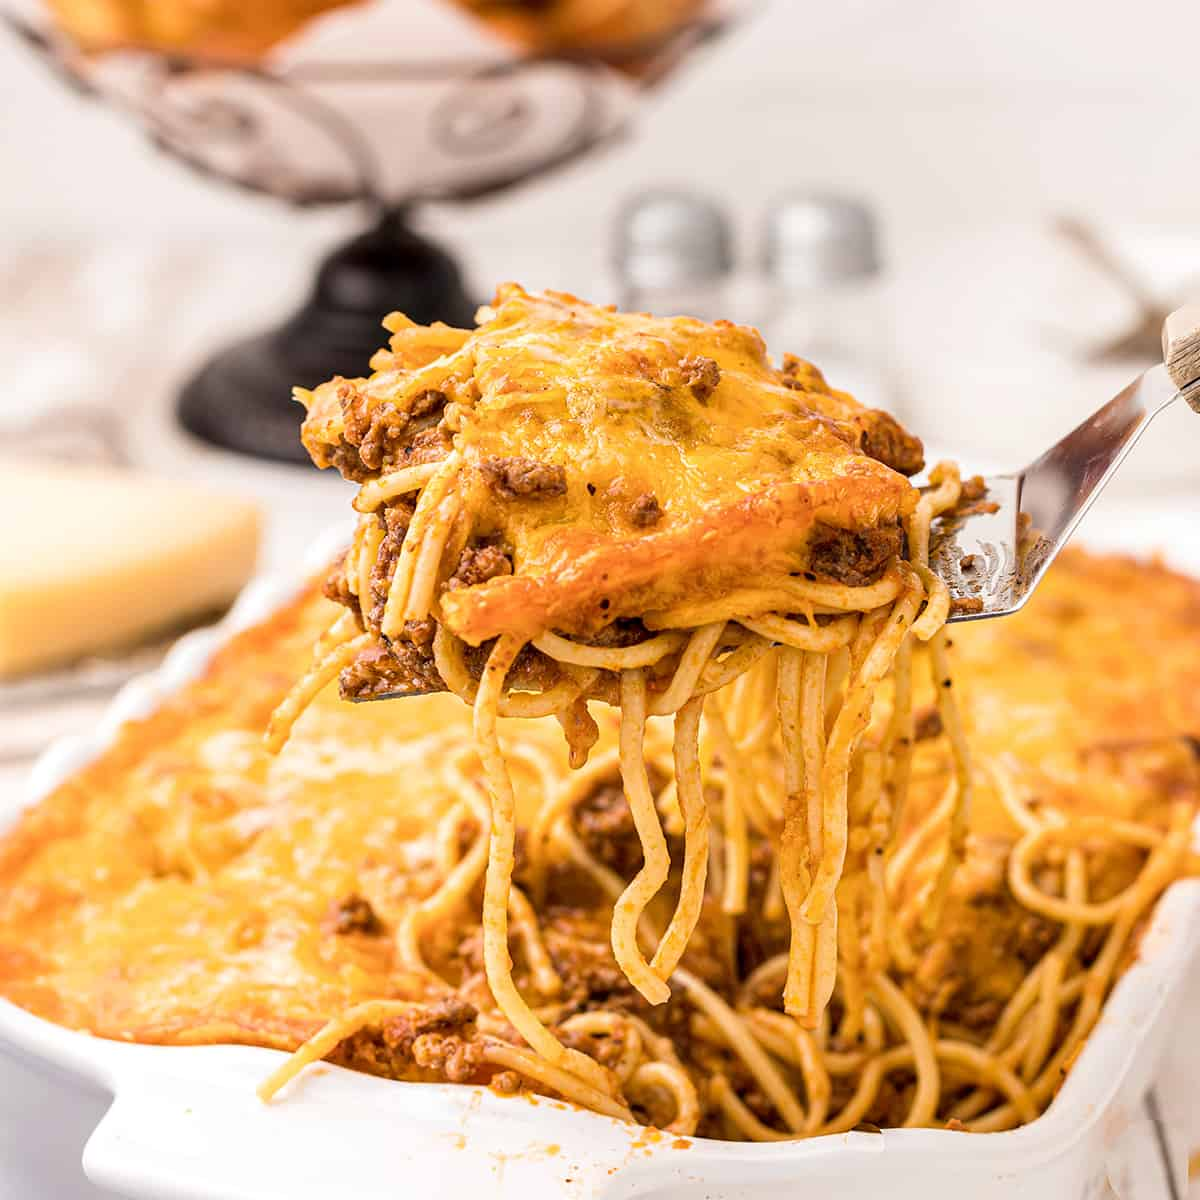 A forkful of baked spaghetti dripping with cheesy topping and meat sauce.